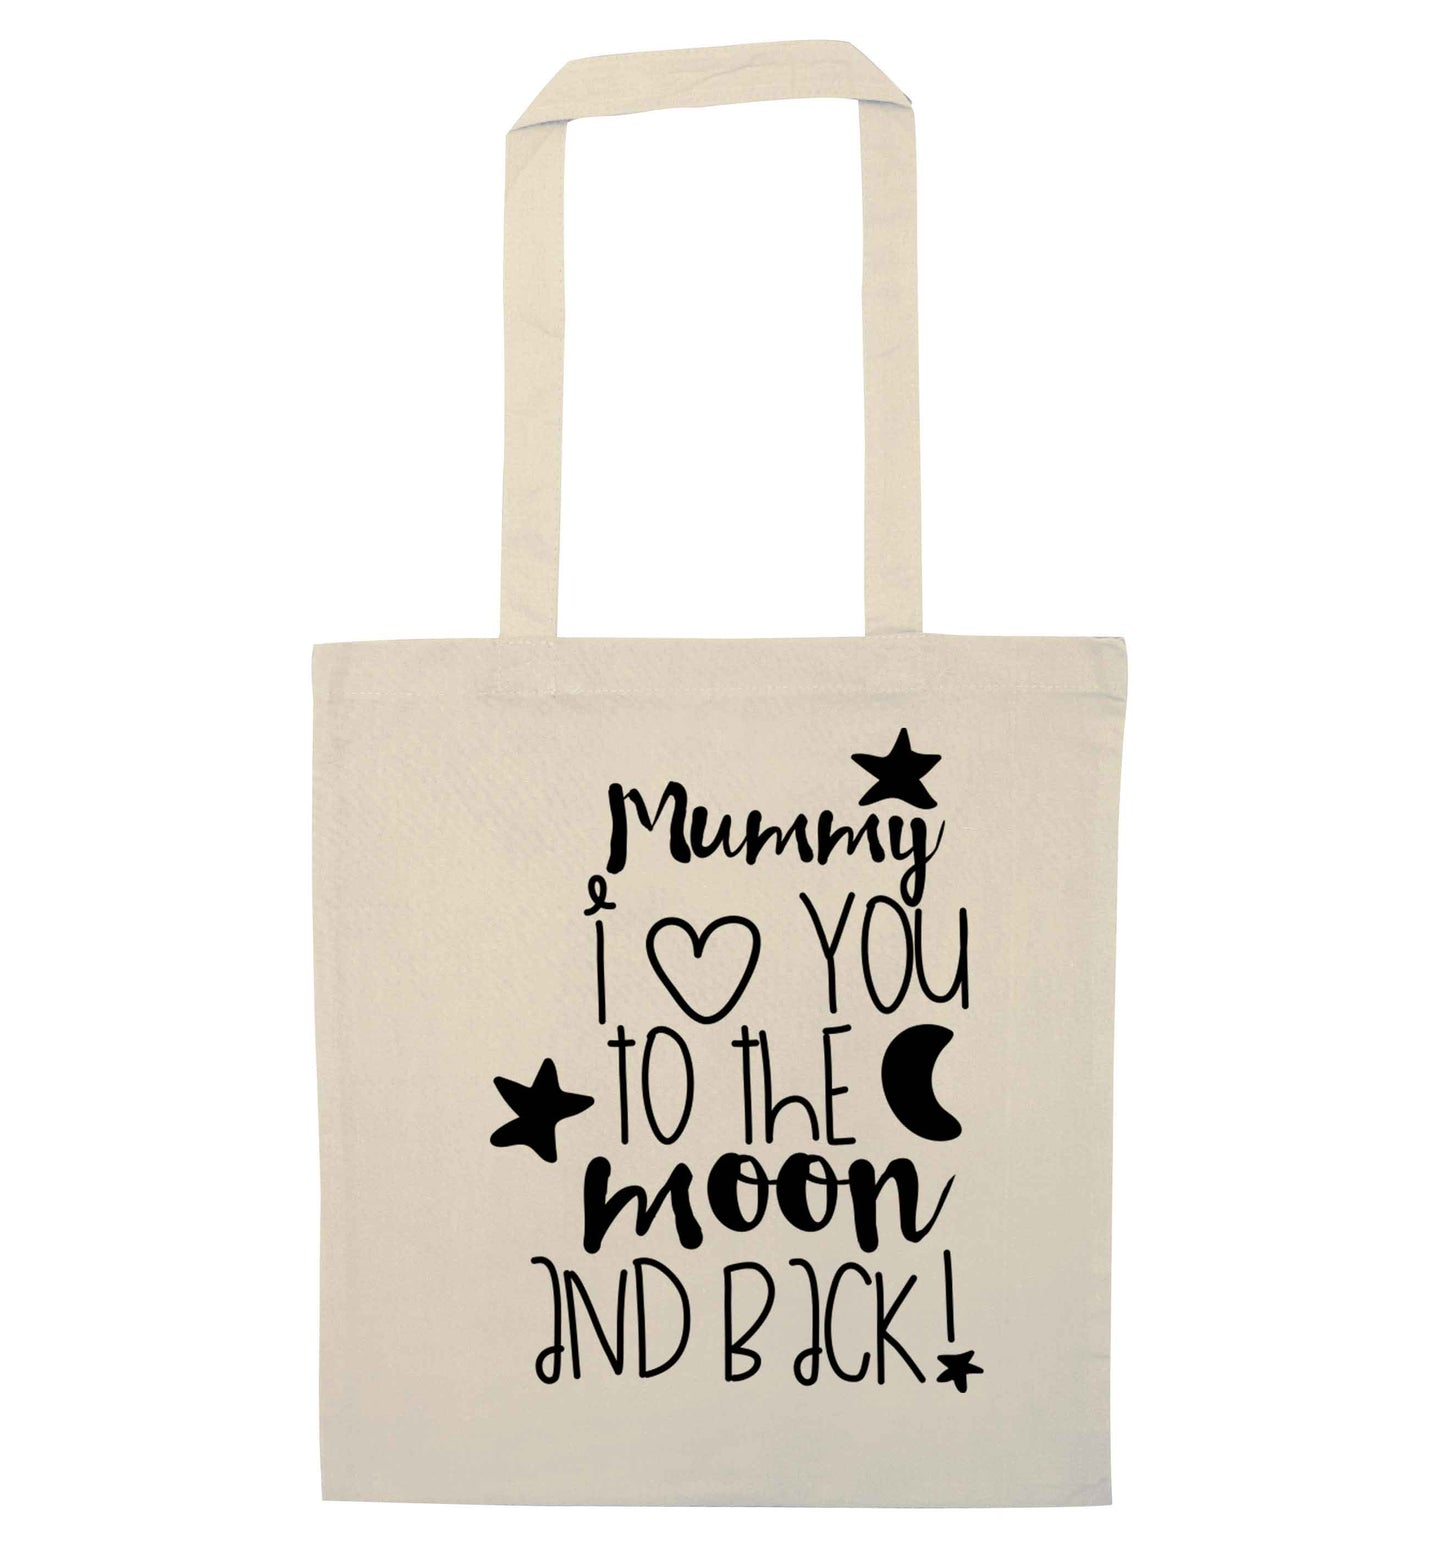 Mummy I love you to the moon and back natural tote bag